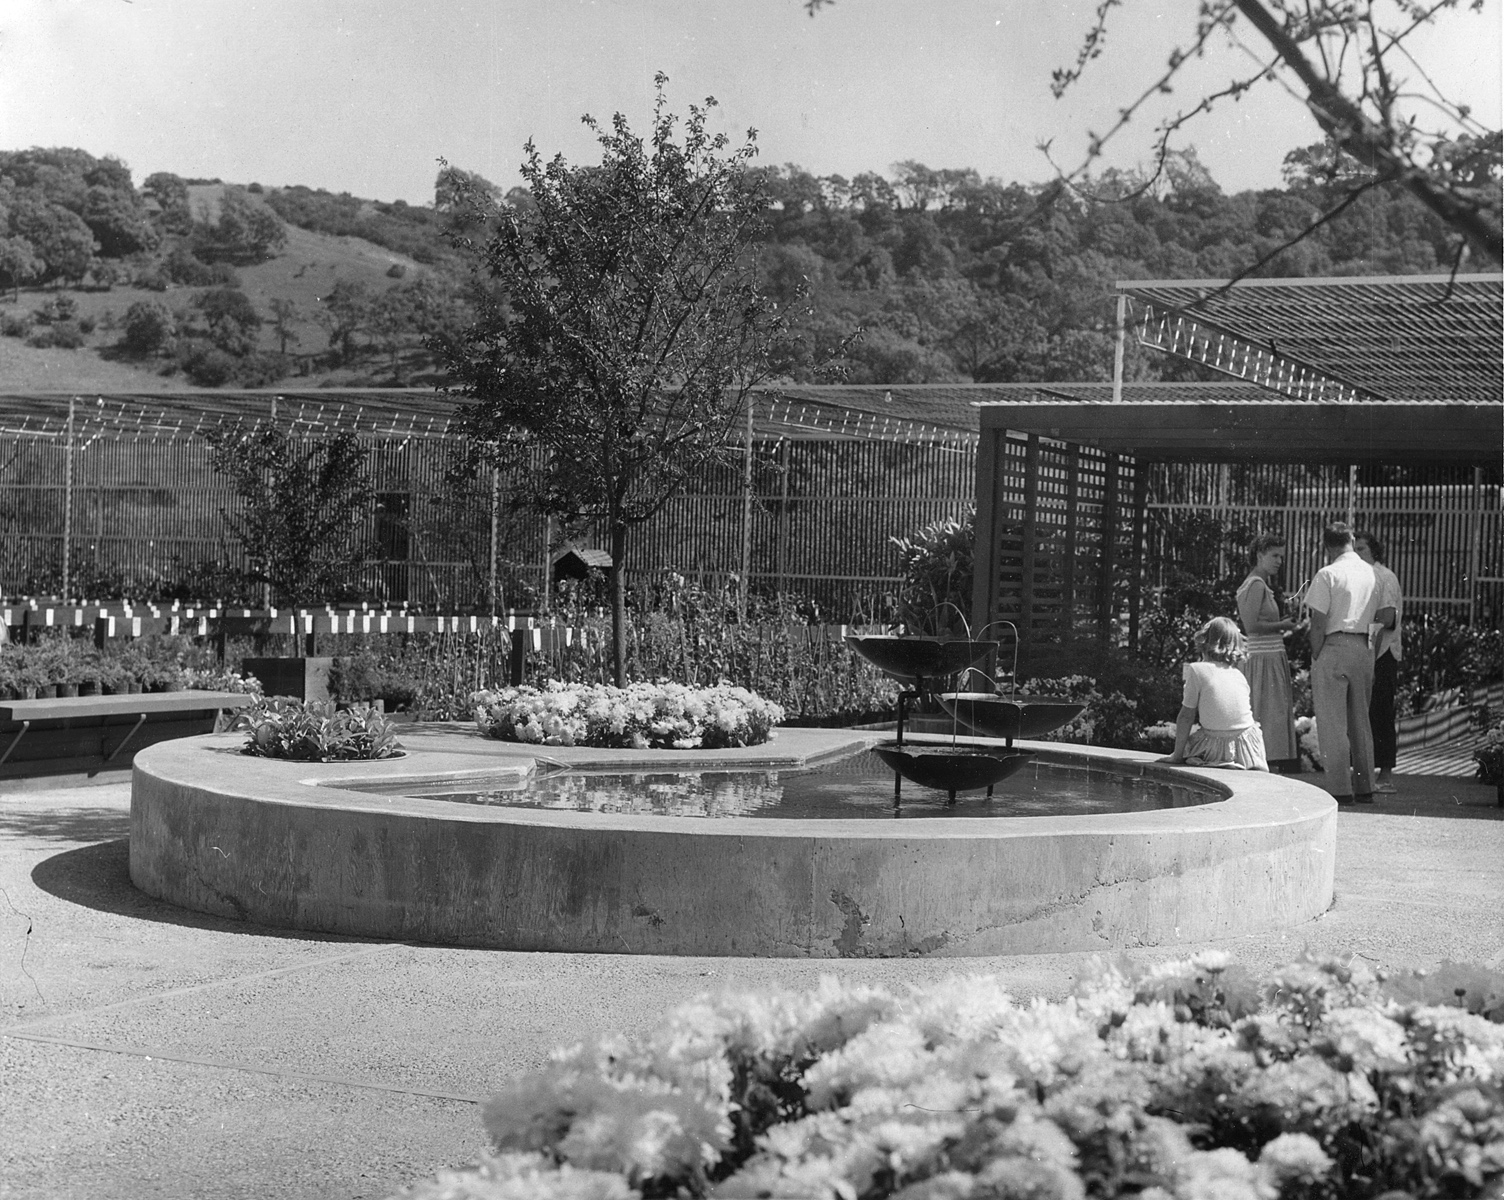 Ernest Wertheim created a seating area including the pond, inviting customers to stay awhile.